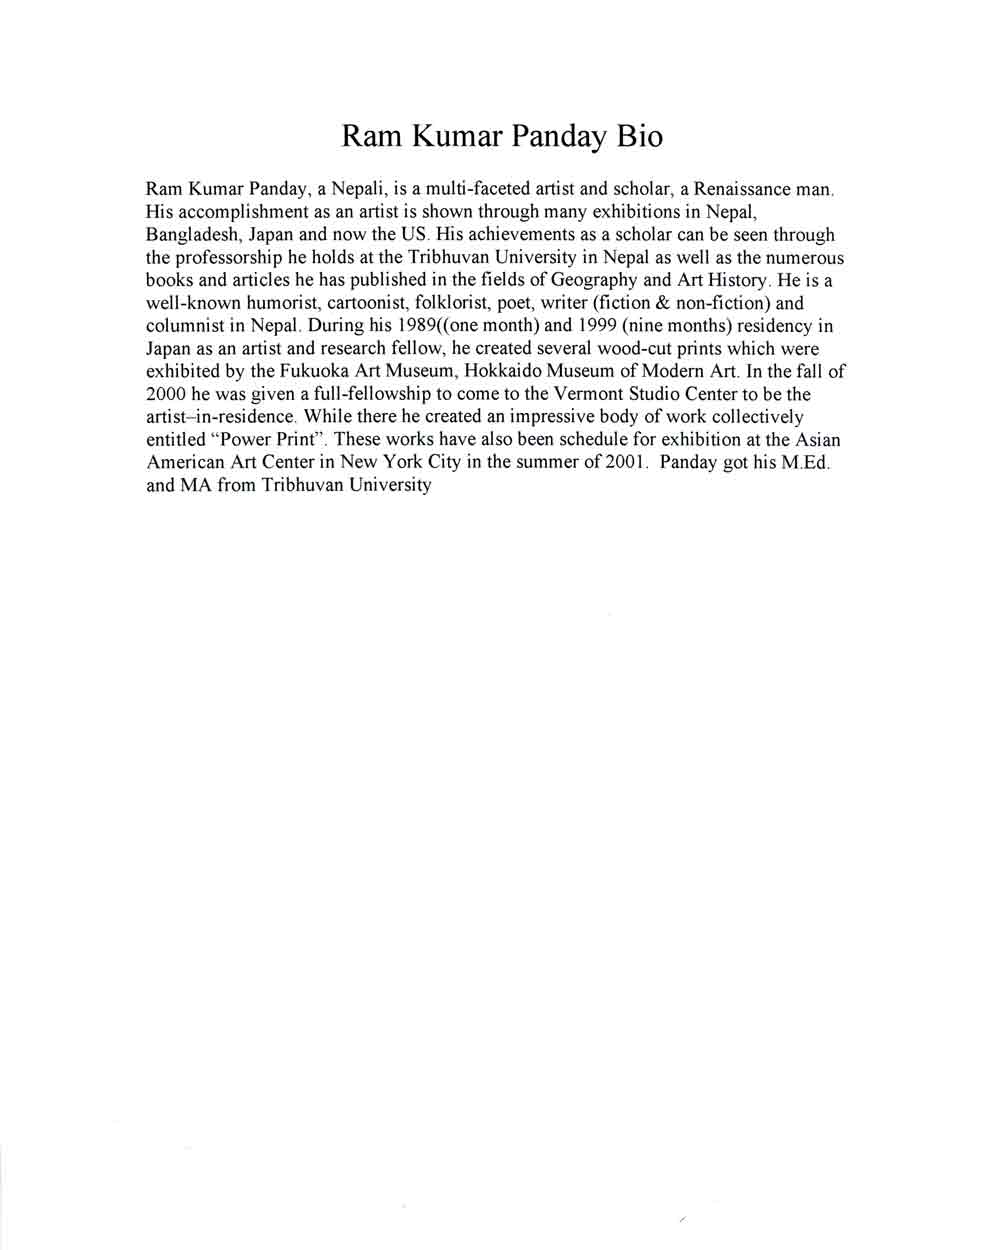 Ram Kumar Panday's Biography